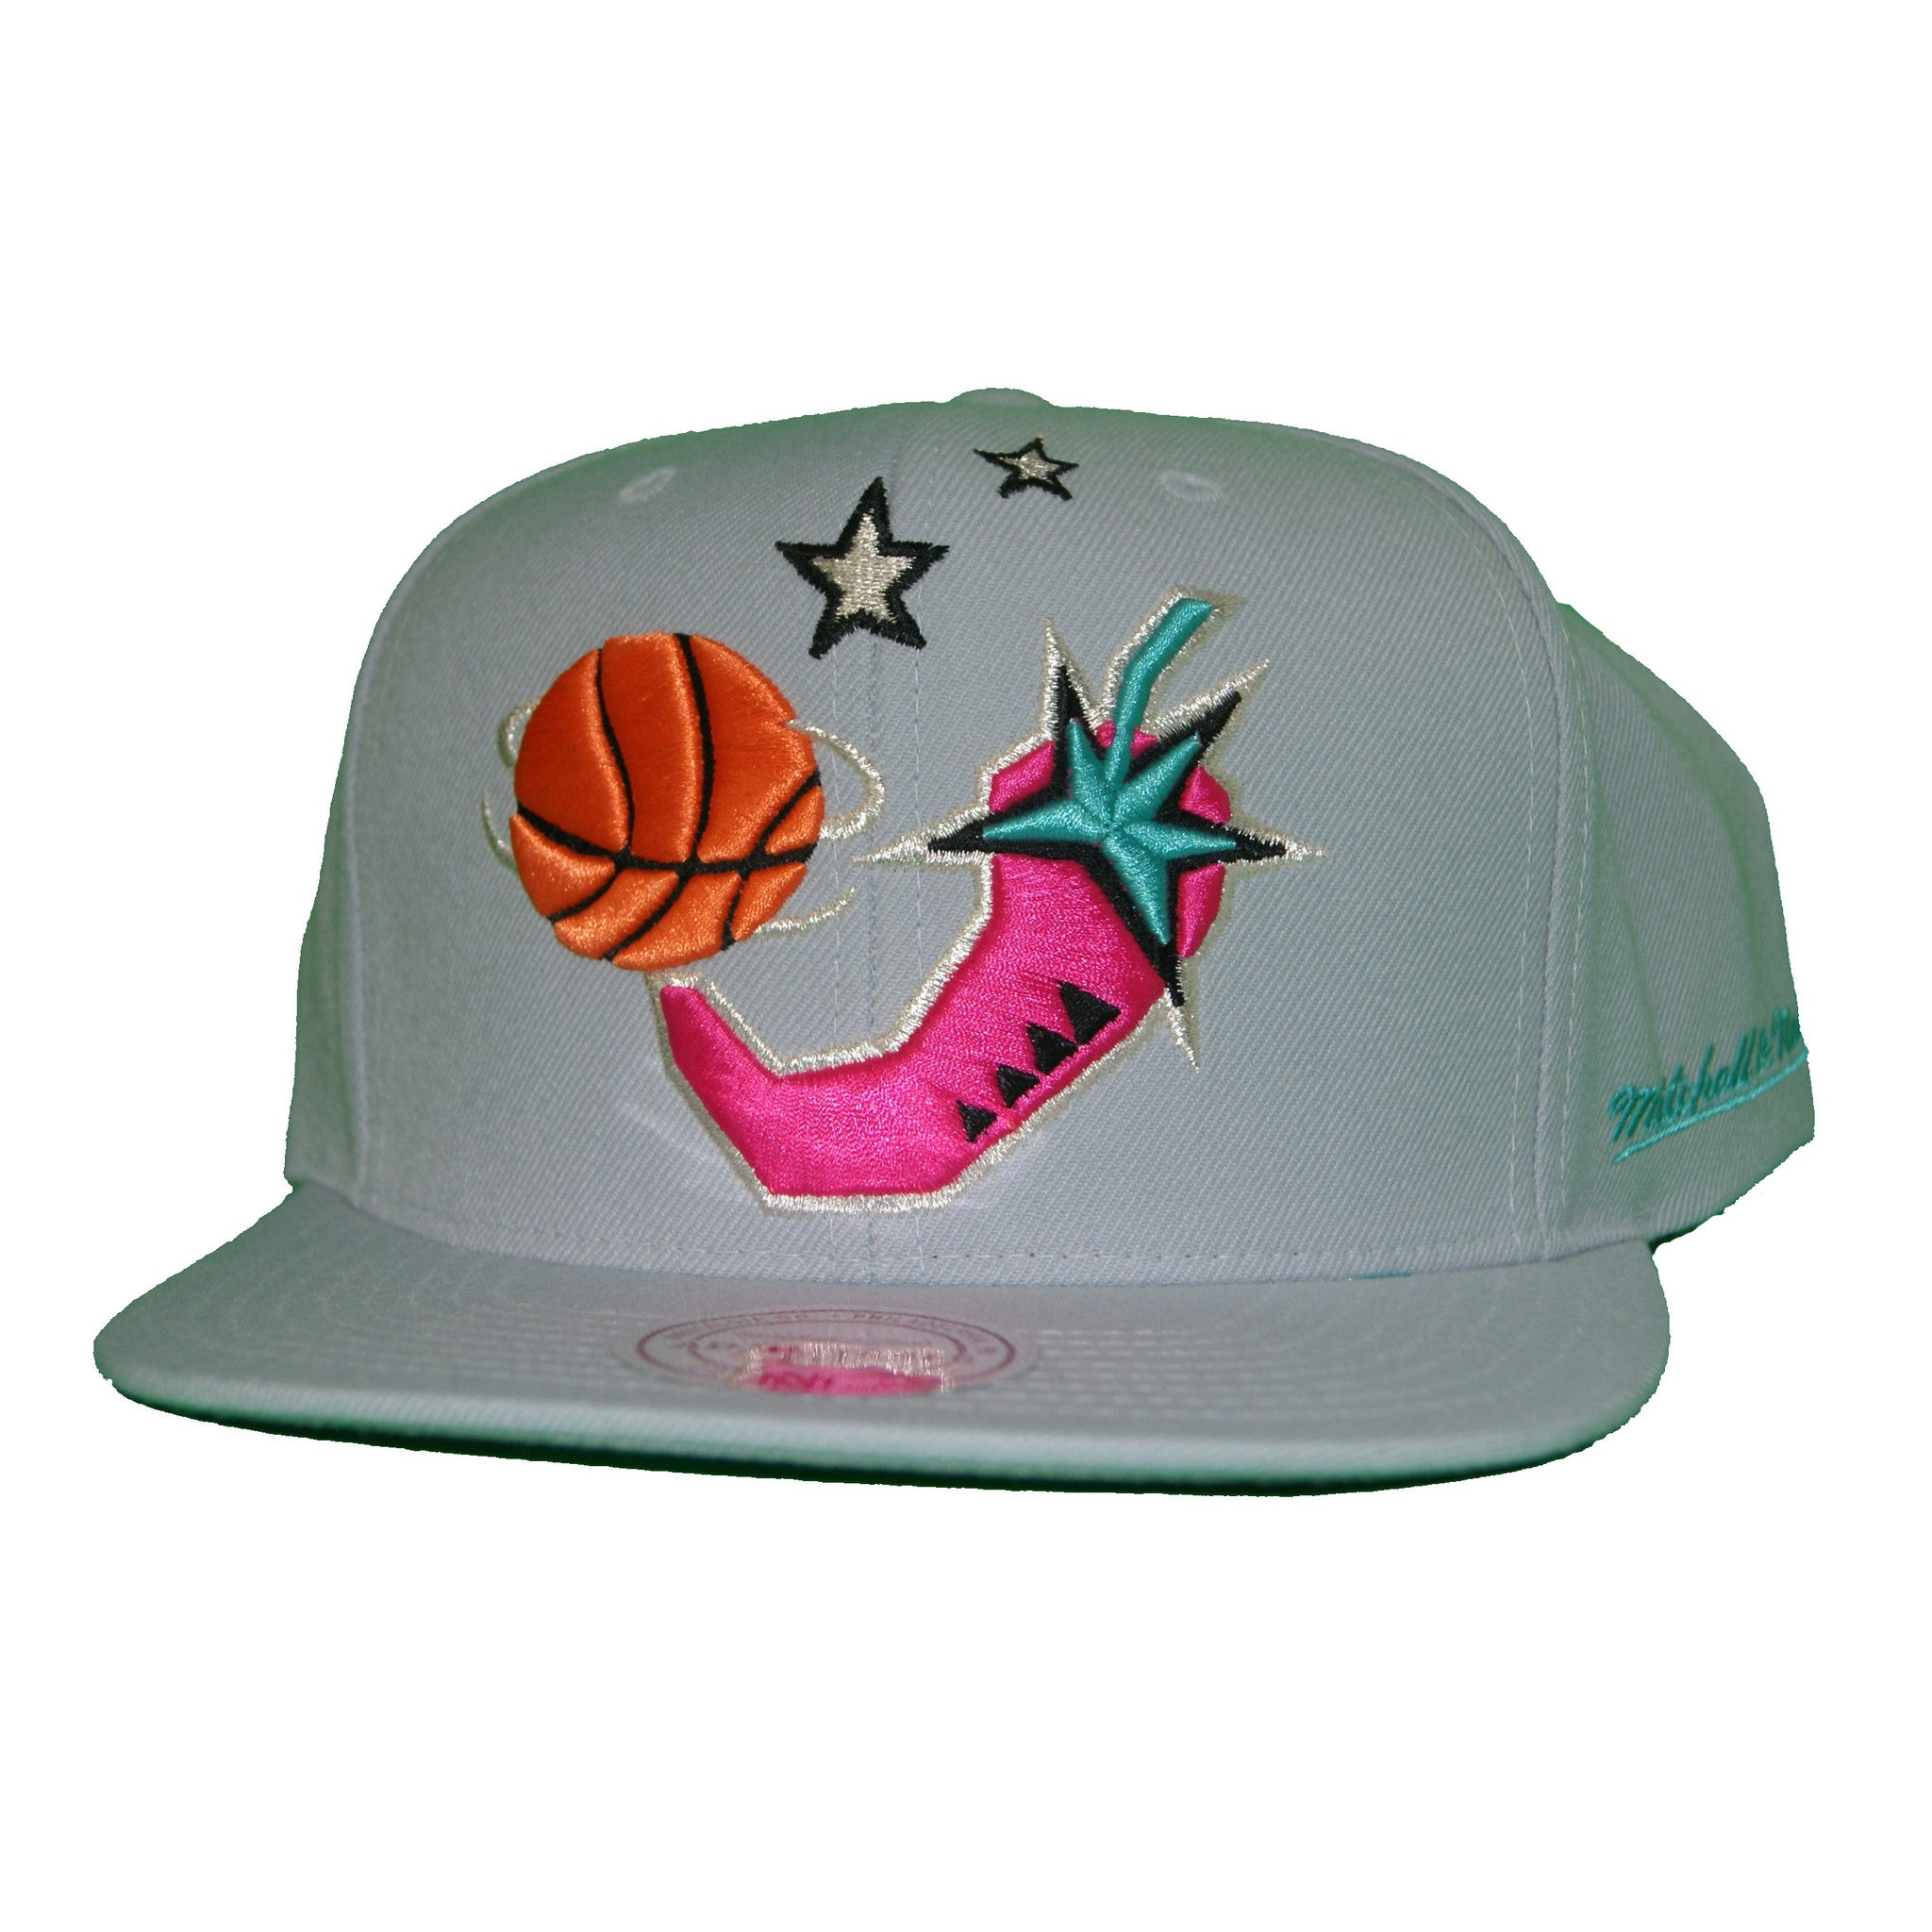 Mitchell   Ness 1996 NBA All Star Chili Pepper Snapback In Grey 0f2a6849c9a5